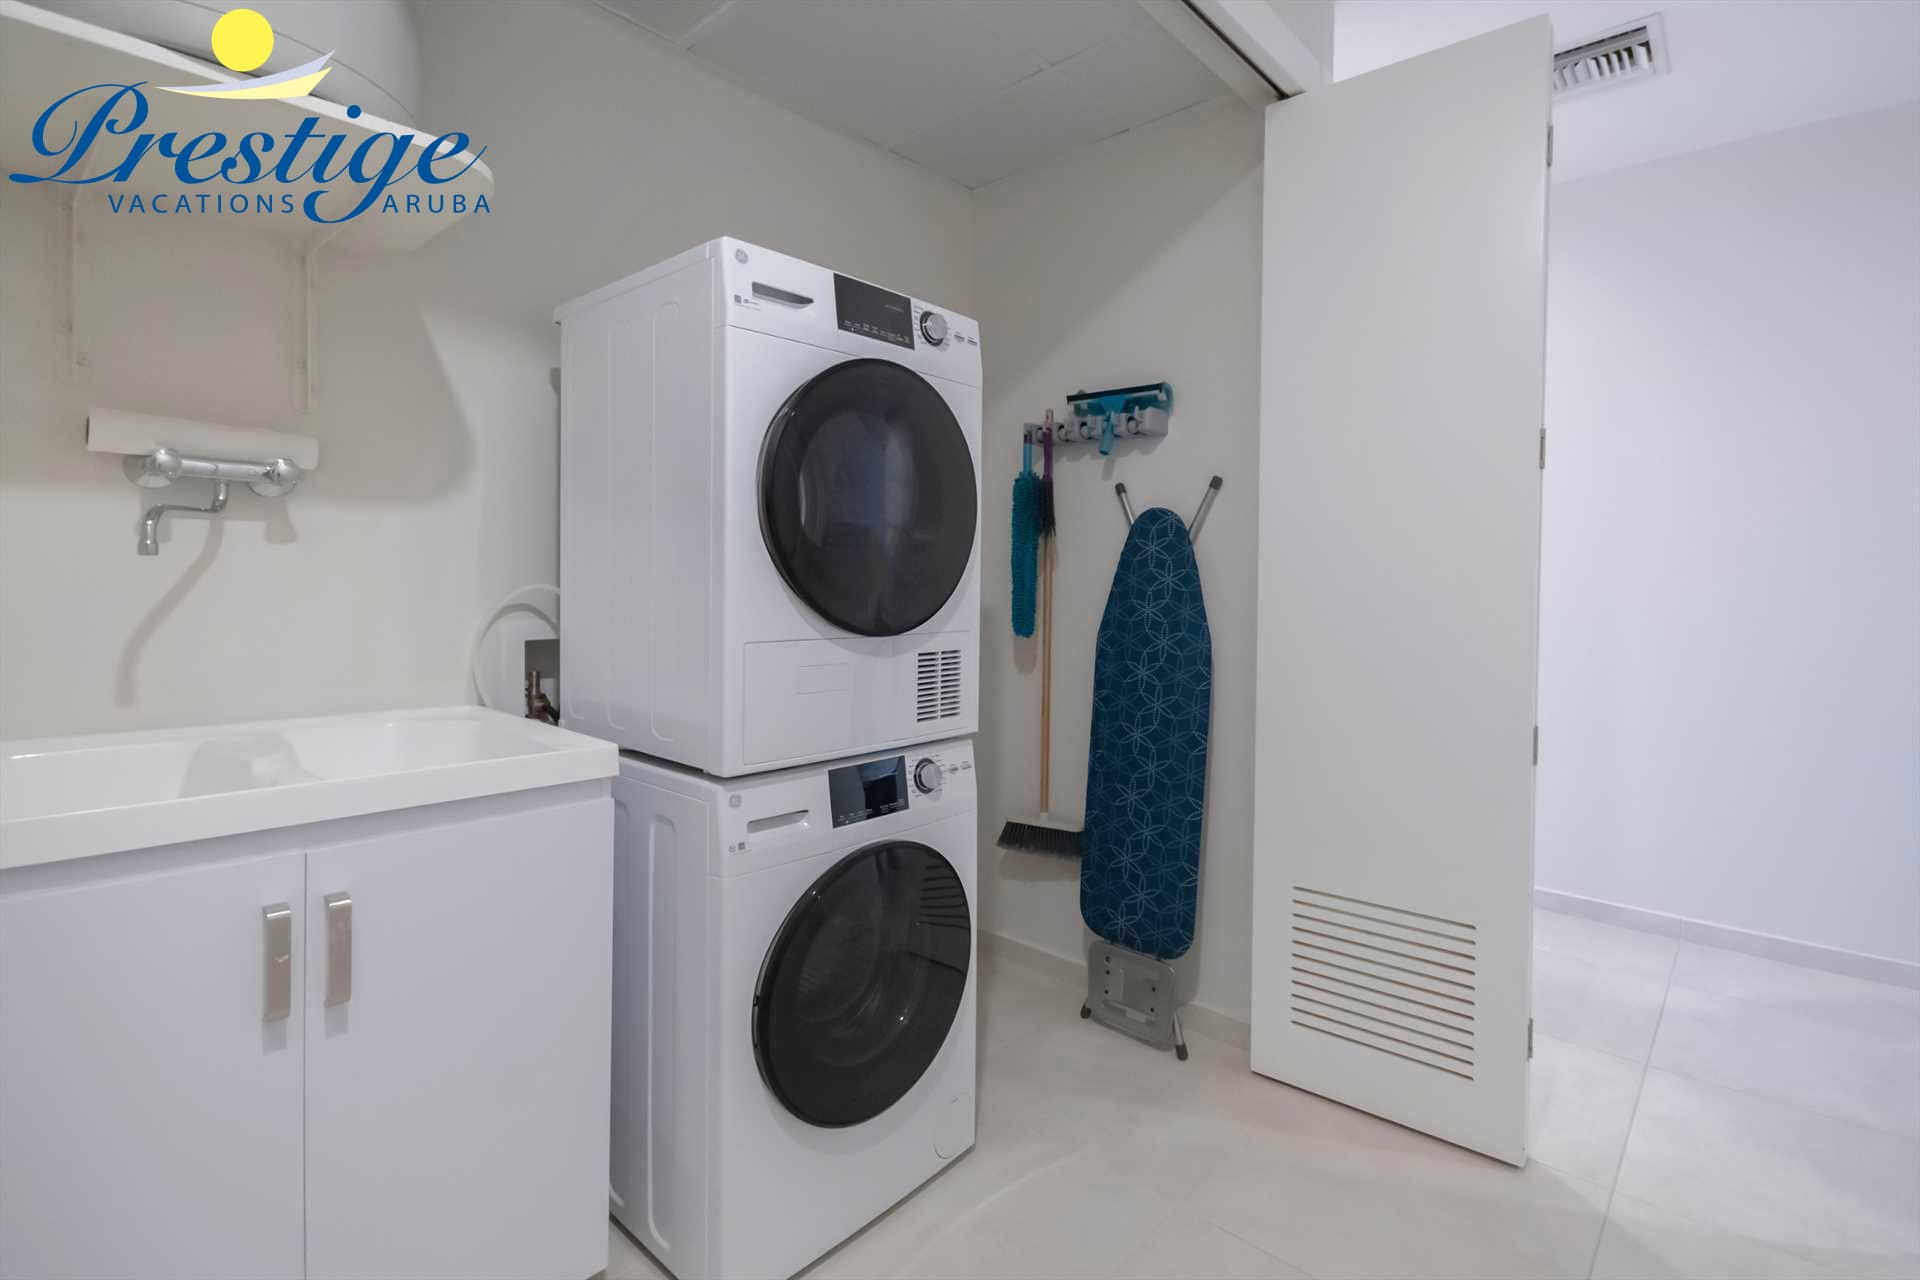 Laundry closet with a washer and dryer, there is also a half bathroom